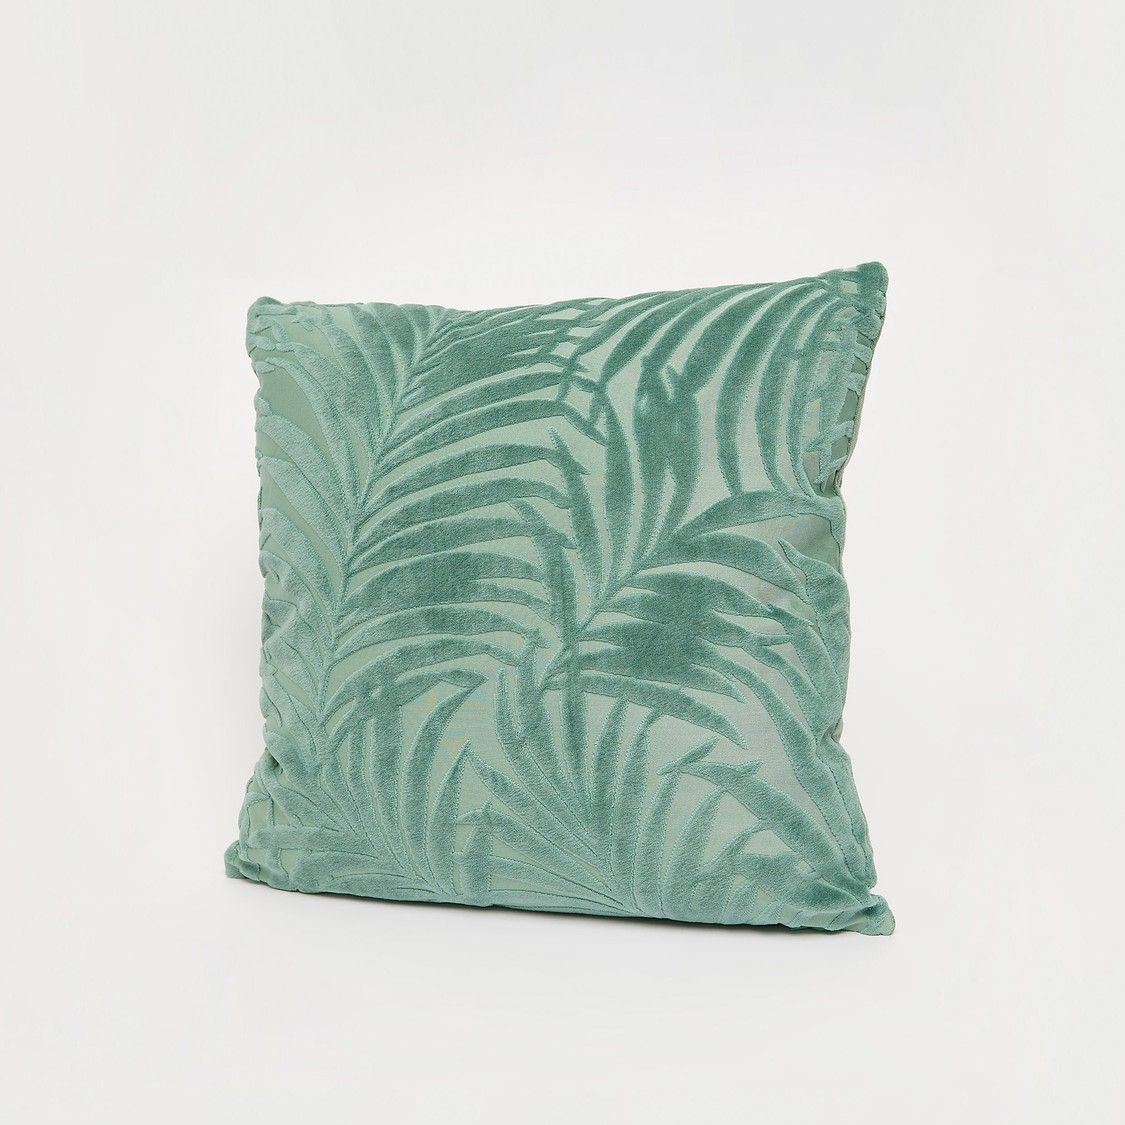 Leaf Embossed Square Filled Cushion with Zip Closure - 45x45 cms